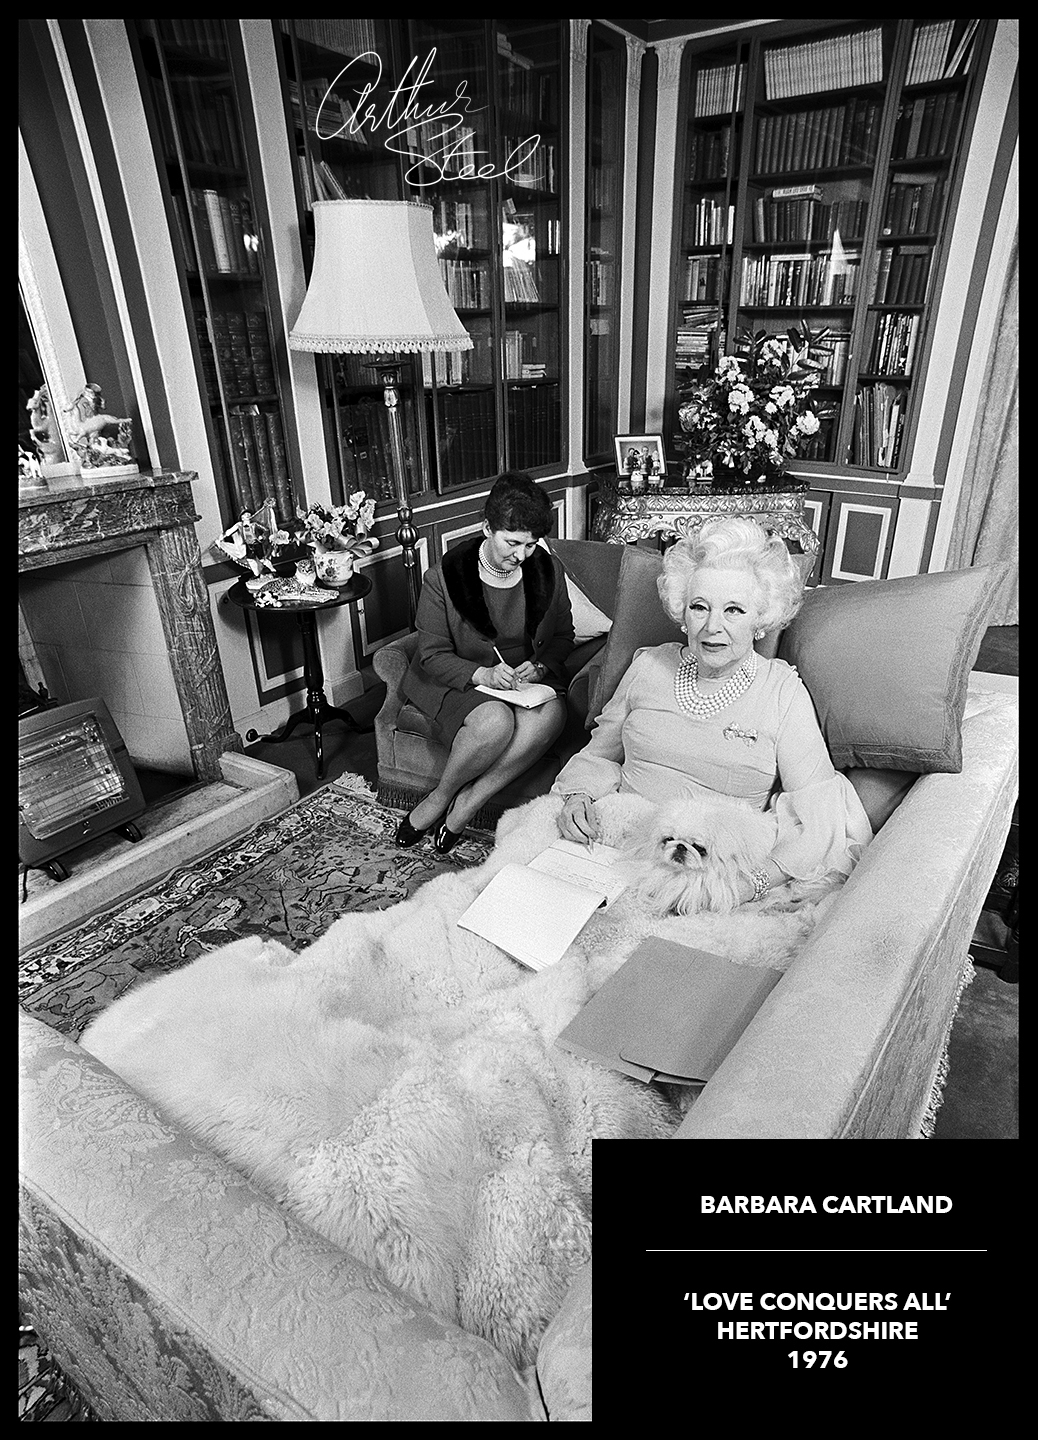 barbara_cartland_dictating_novel_photo_arthur_steel